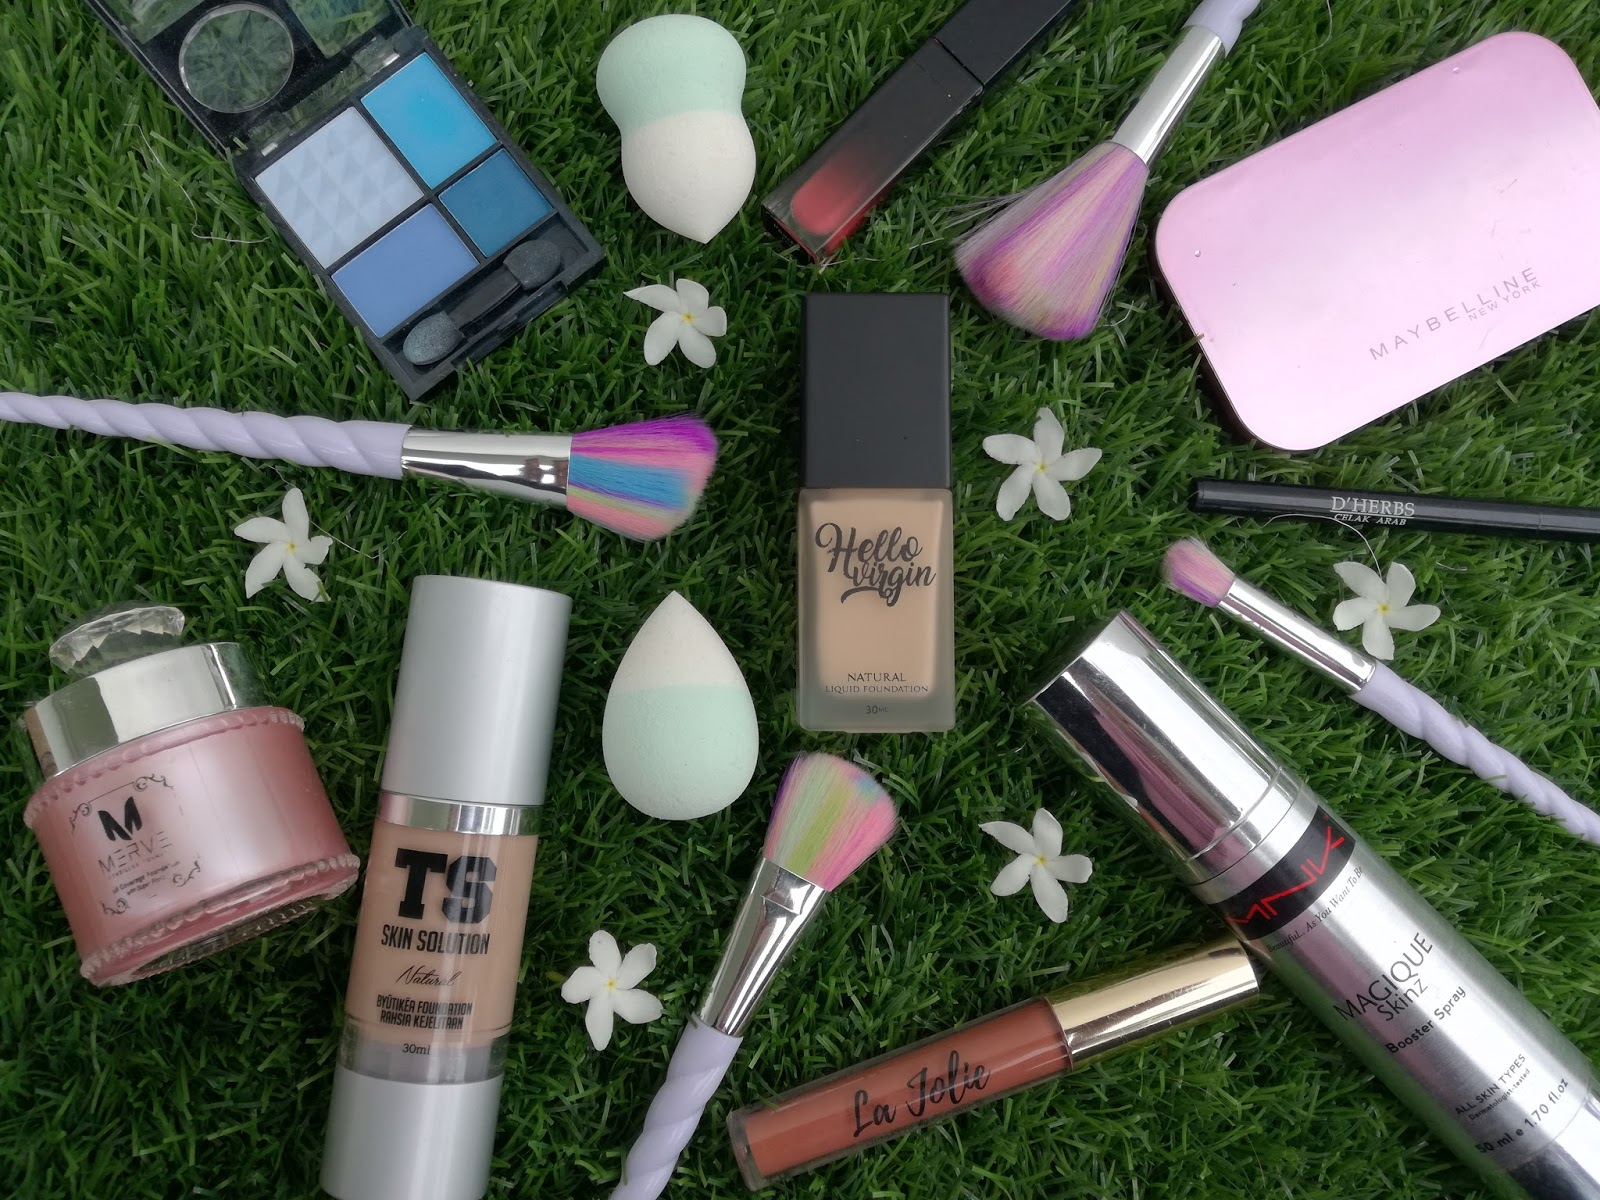 Makeup Base Yang Murah - Makeup Vidalondon